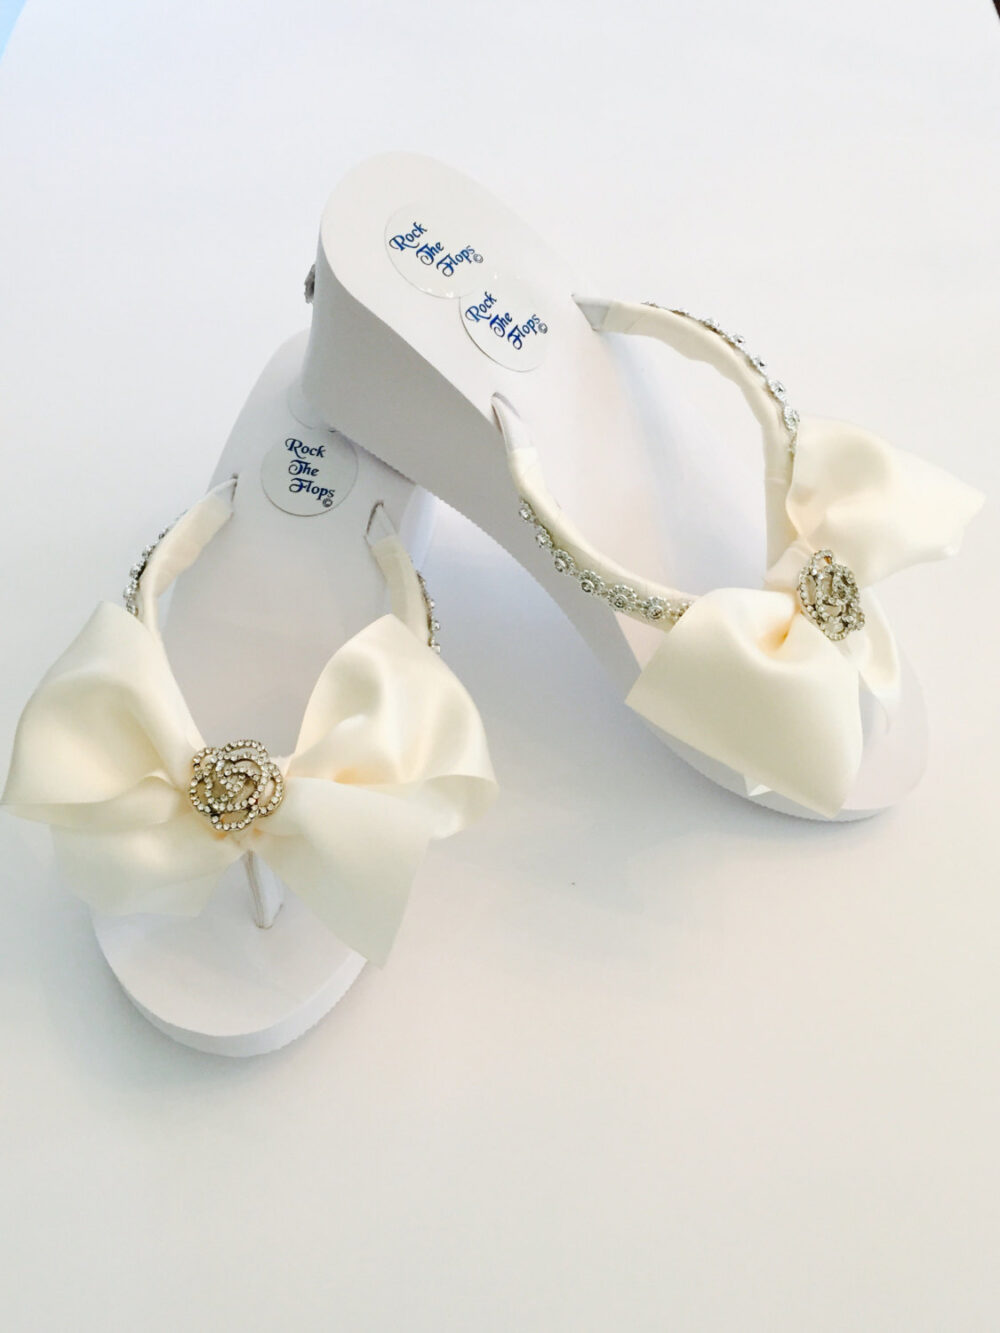 Bridal Flip Flops Wedding Flops.wedding Shoes.bridal Shoes.rhinestone Shoes.i Do Shoes Slippers